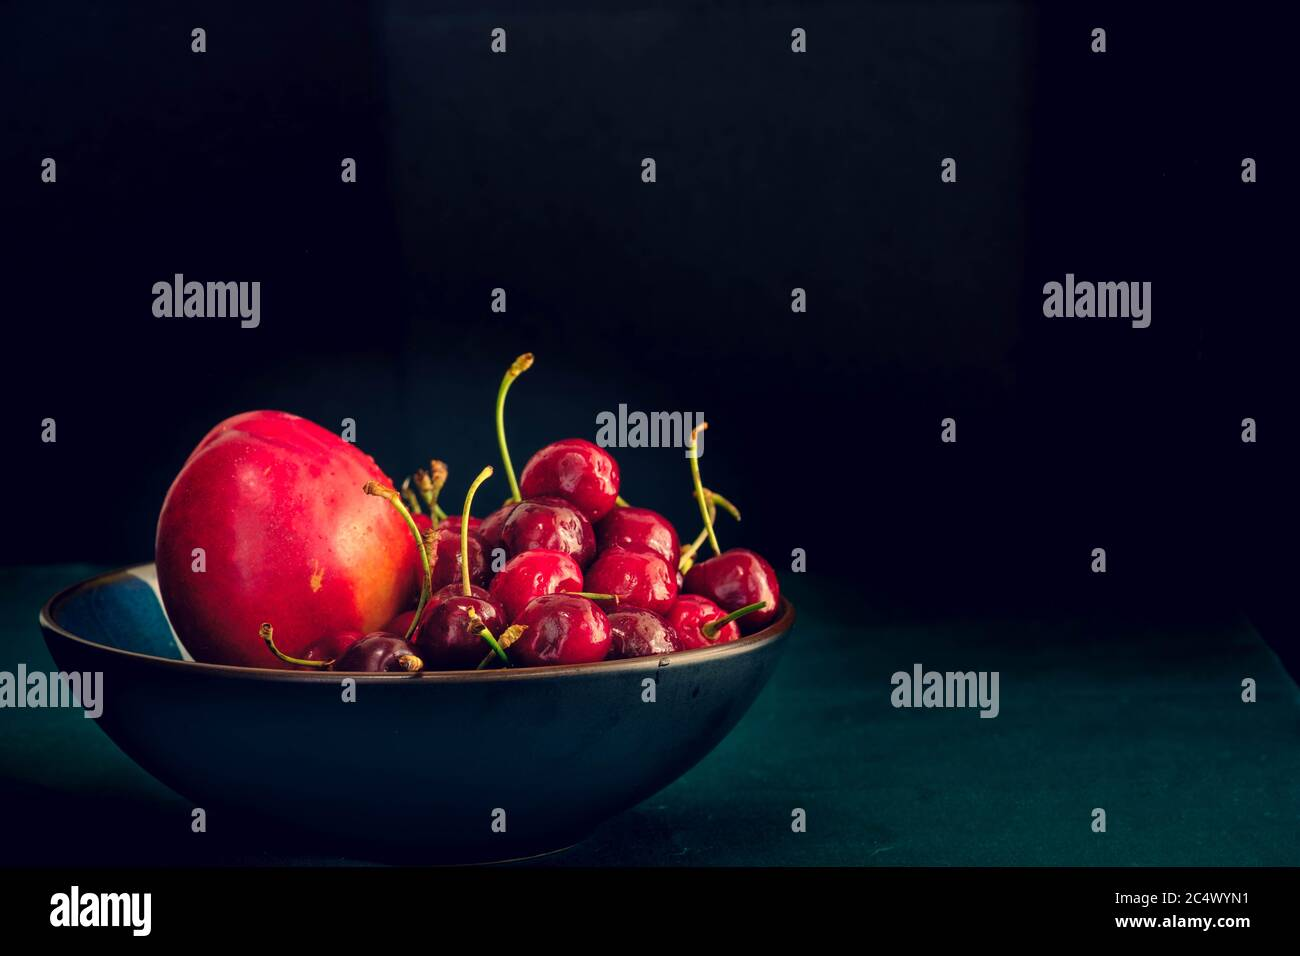 Bowl of cherries and nectarine on dark background, with negative space Stock Photo